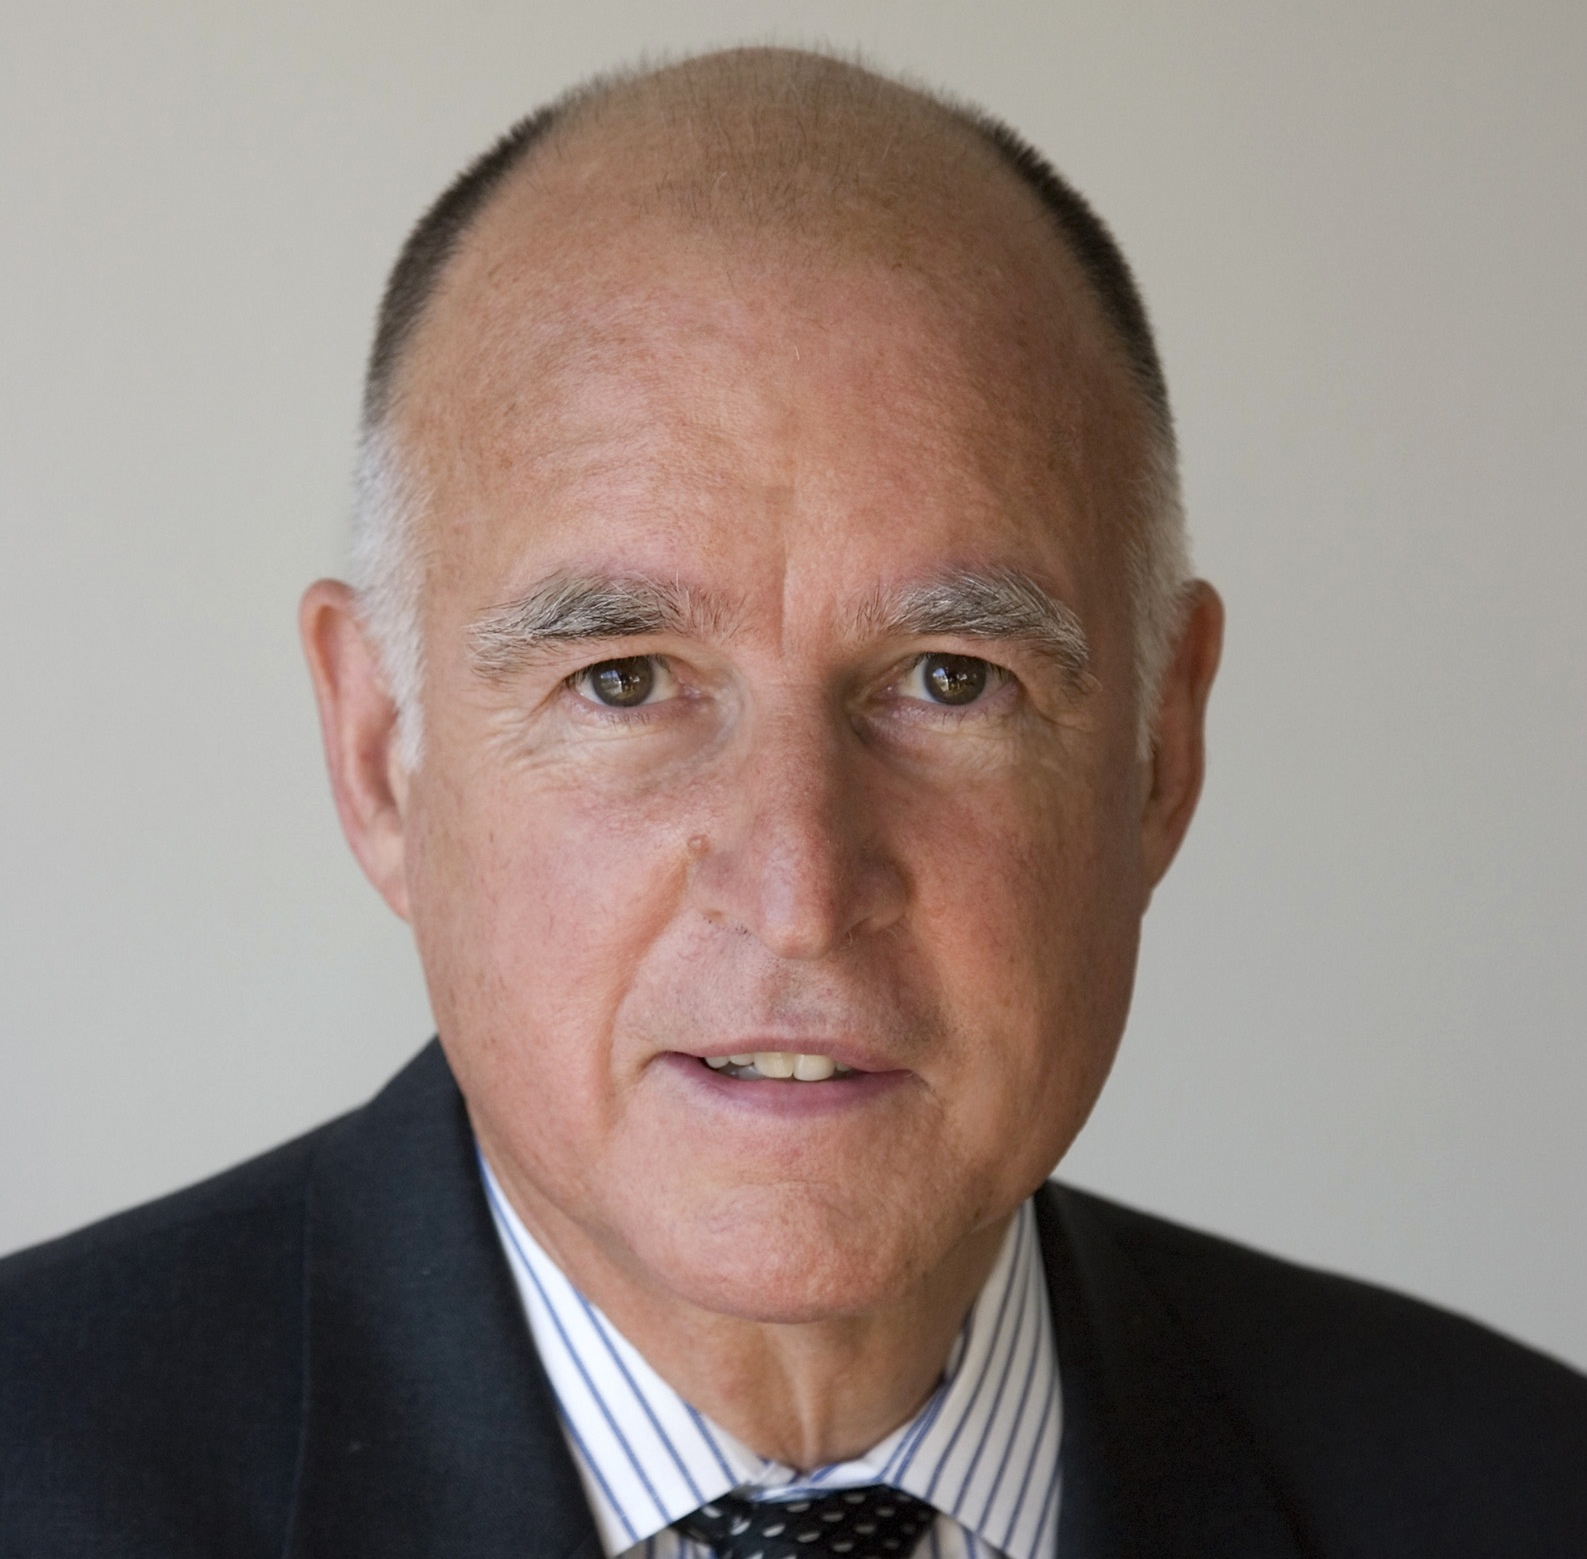 how tall is jerry brown